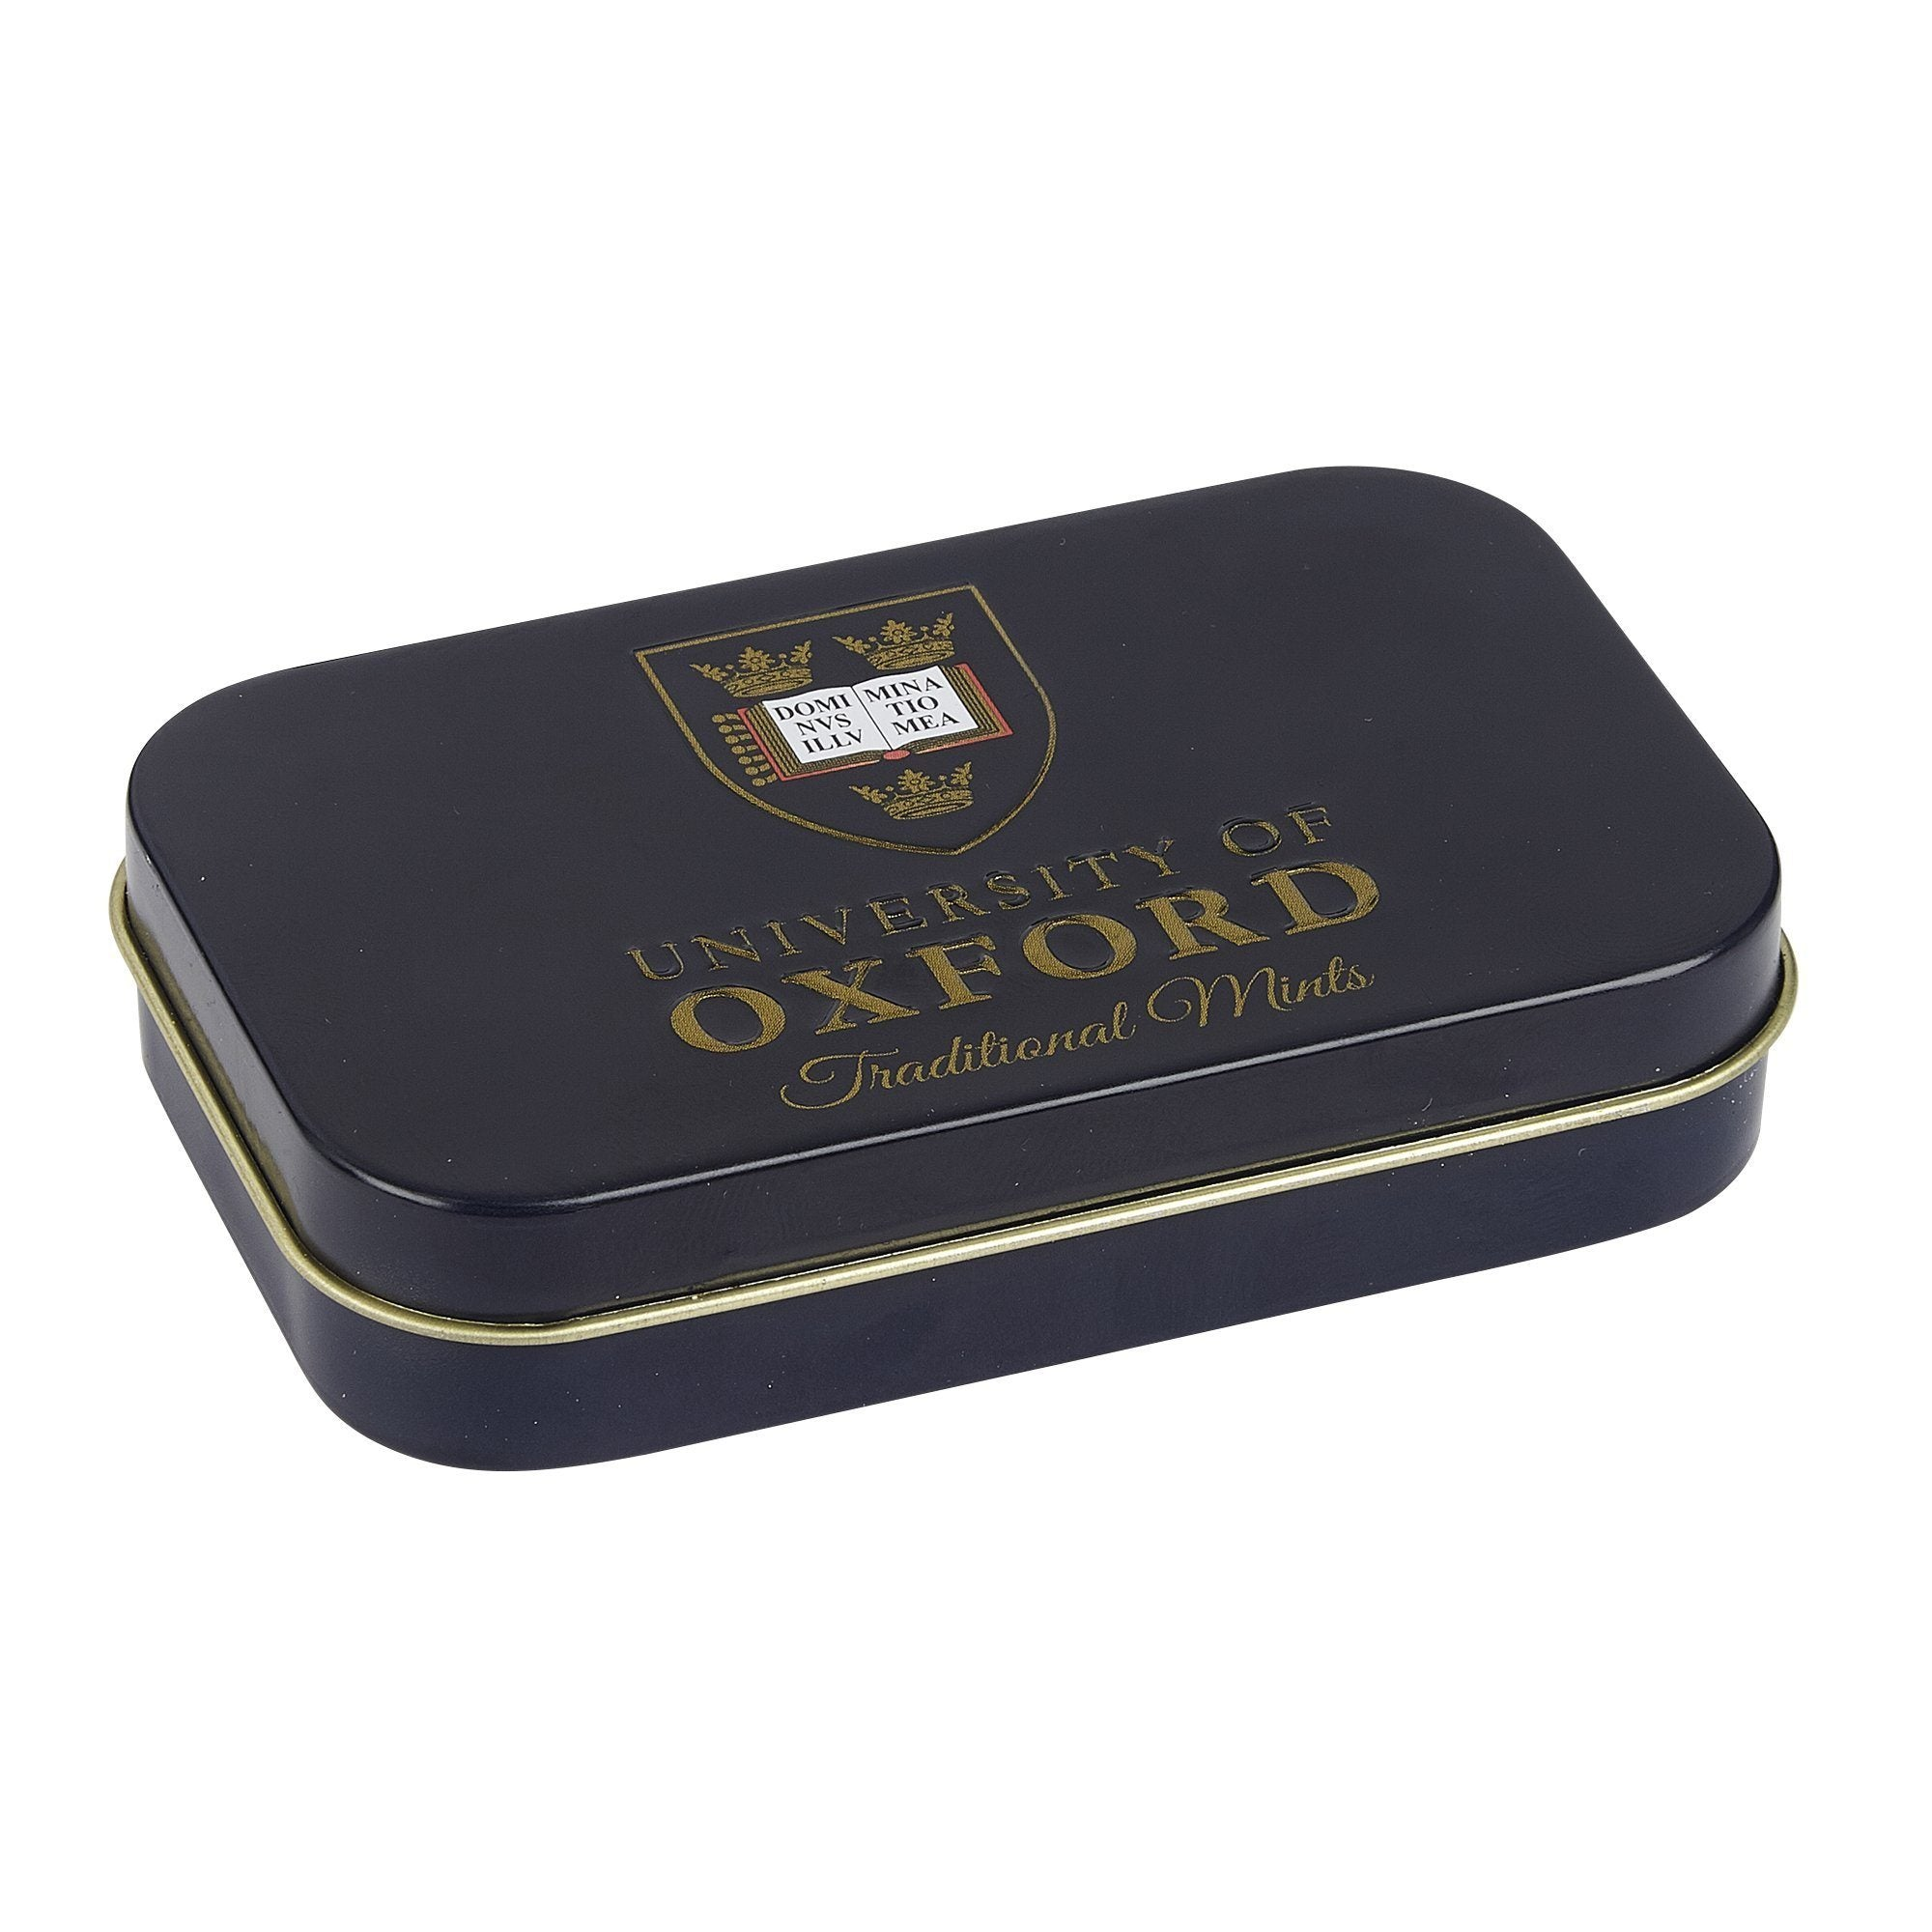 University of Oxford Sugar Free Mints Pocket Tin 35g Mints New English Teas